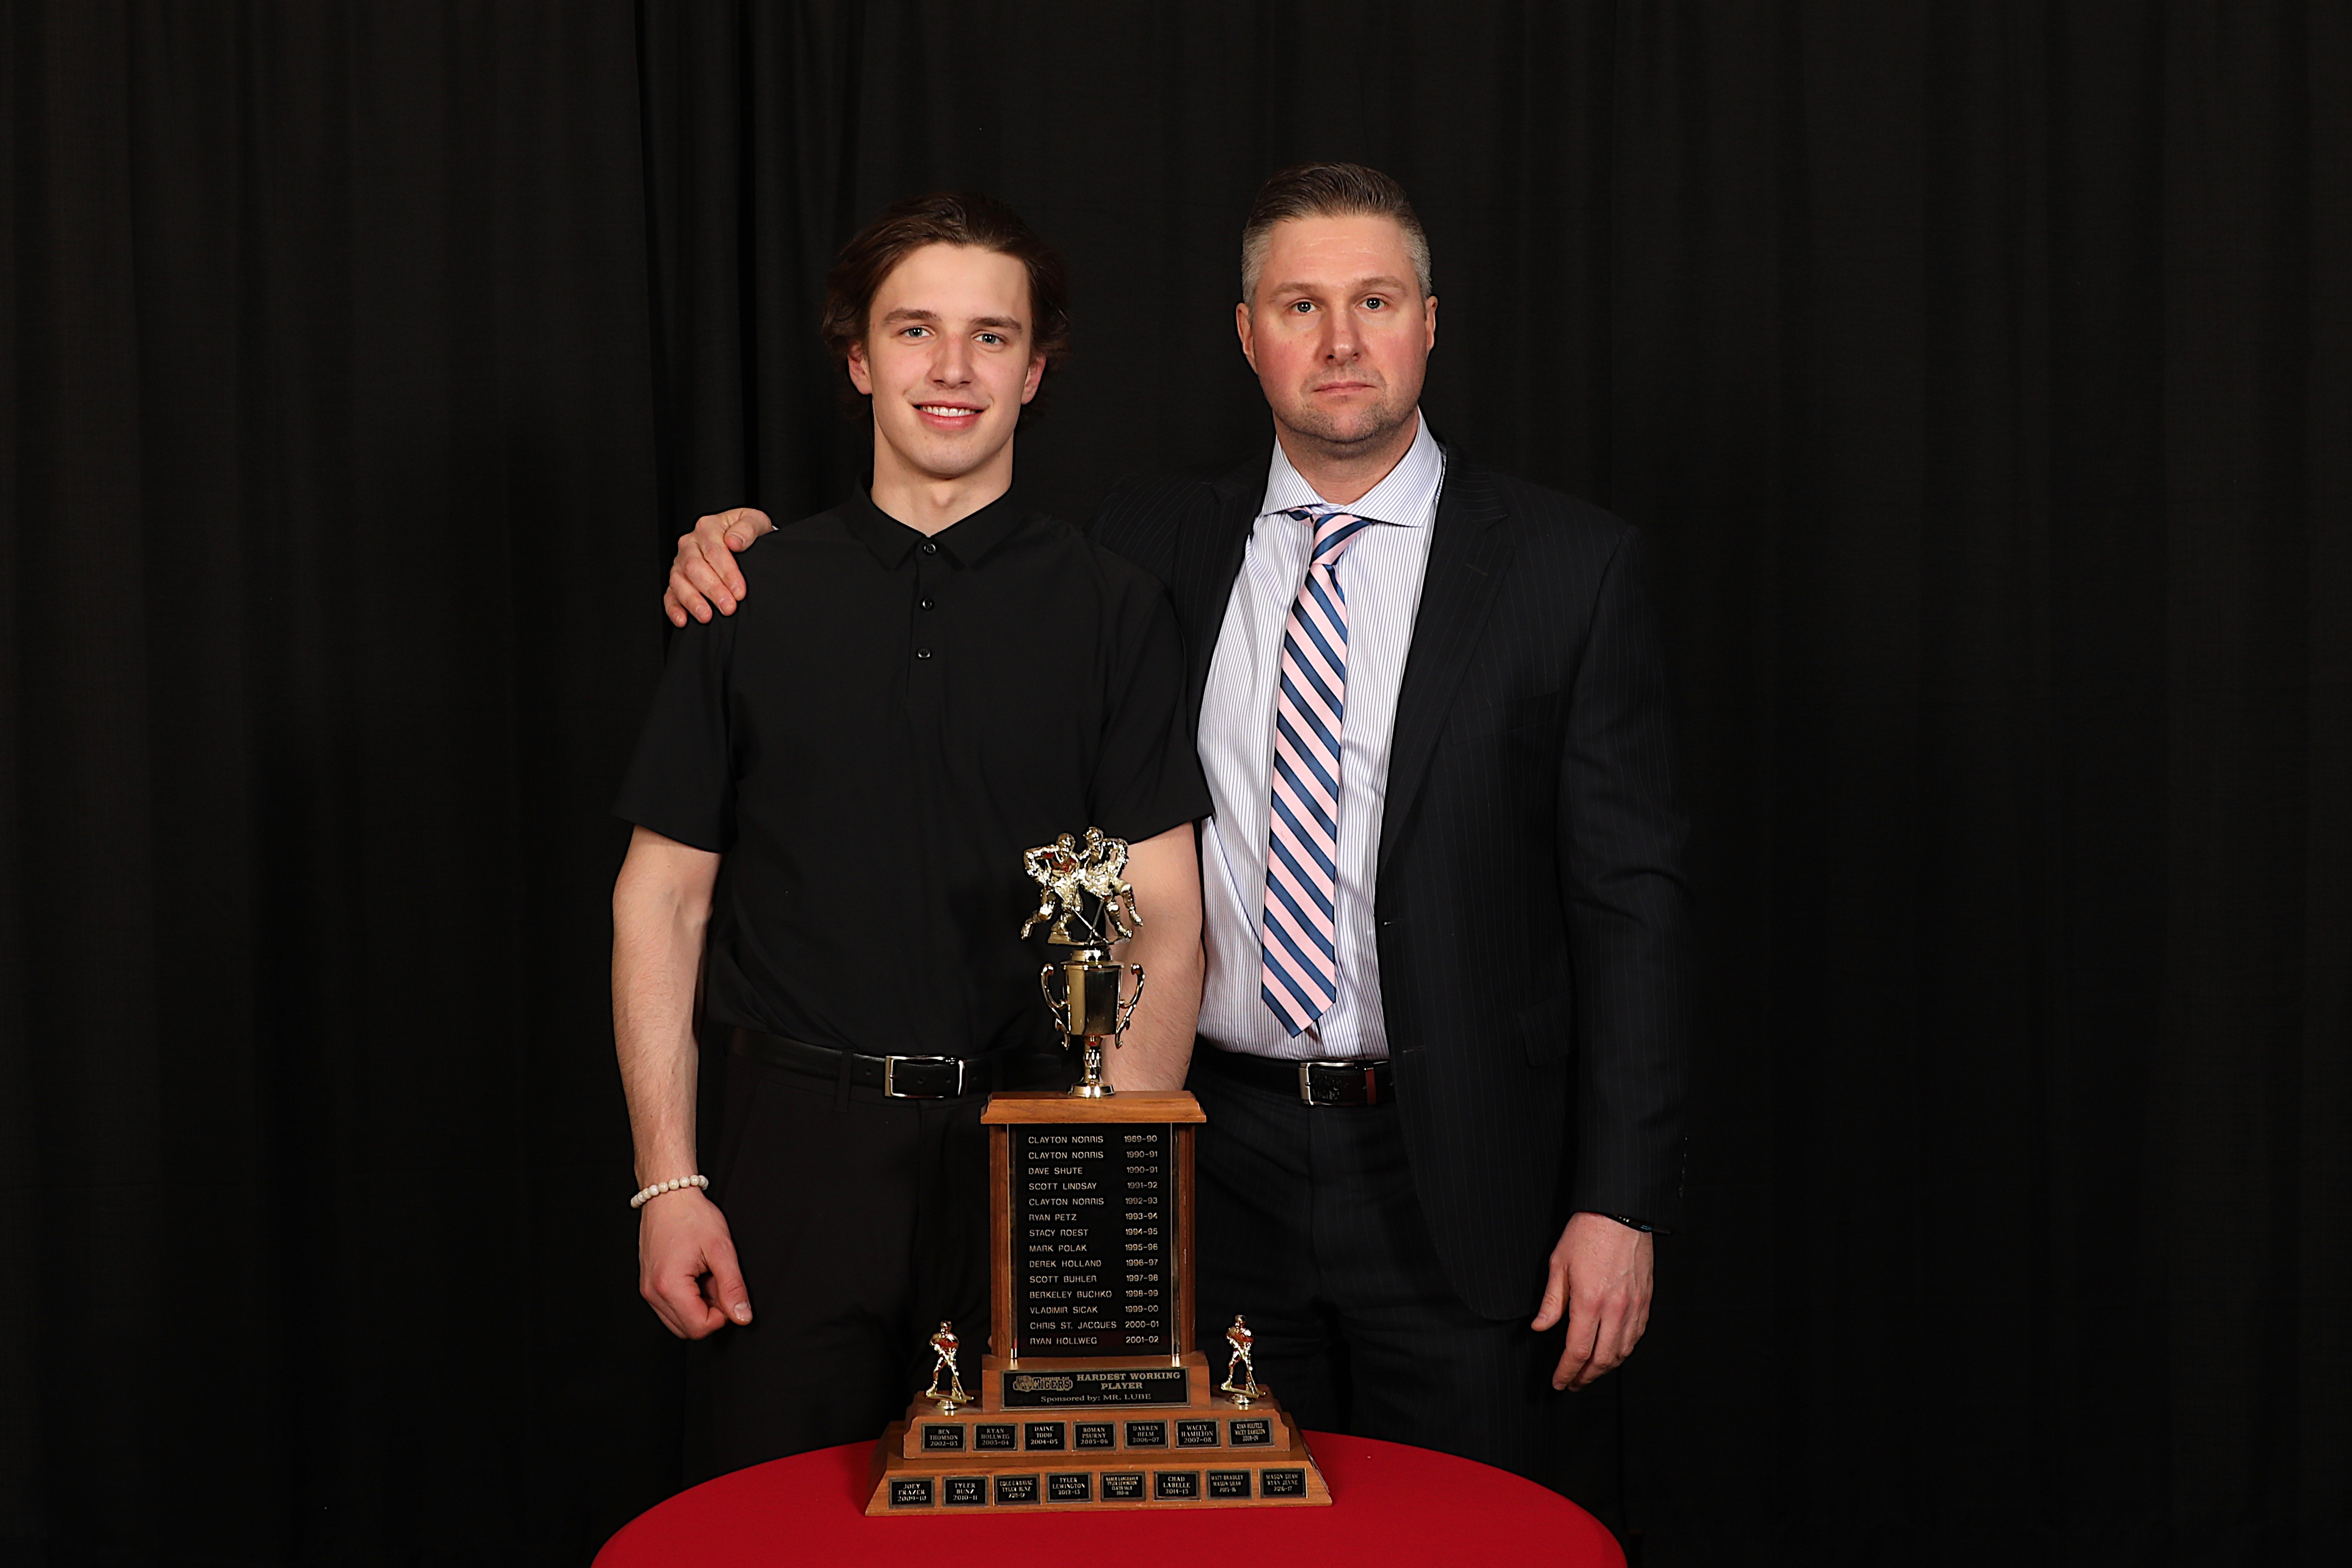 AC Ryan Smith presents the Mr Lube Hardest Working Player to Ryan Chyzowski